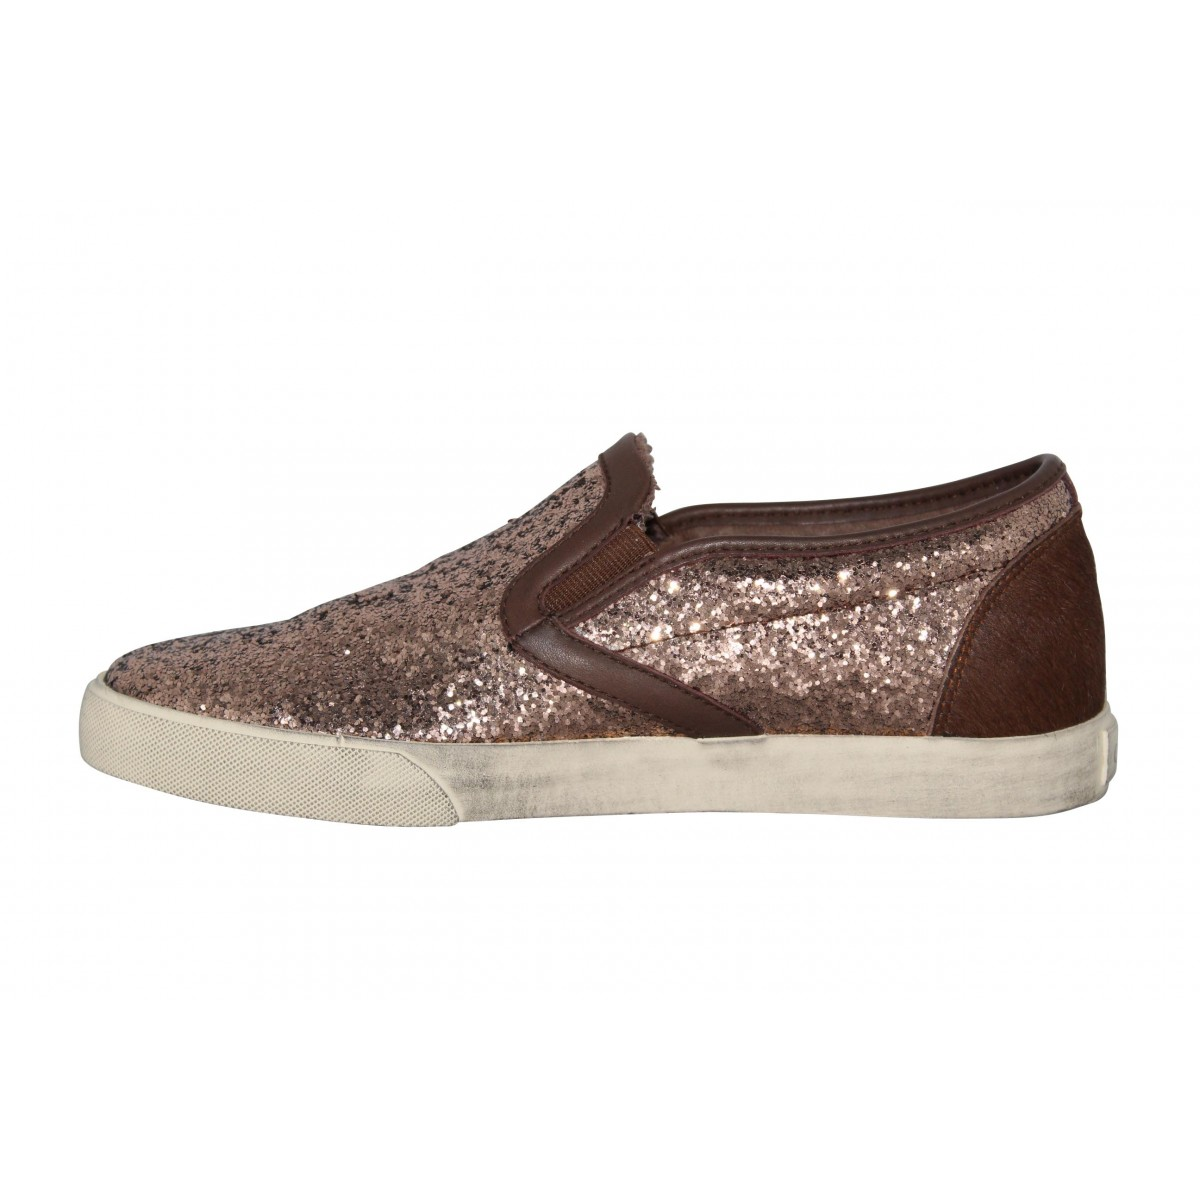 Baskets & Tennis mode 0-105 Revival glitter Femme Marron0-105 SrePhe